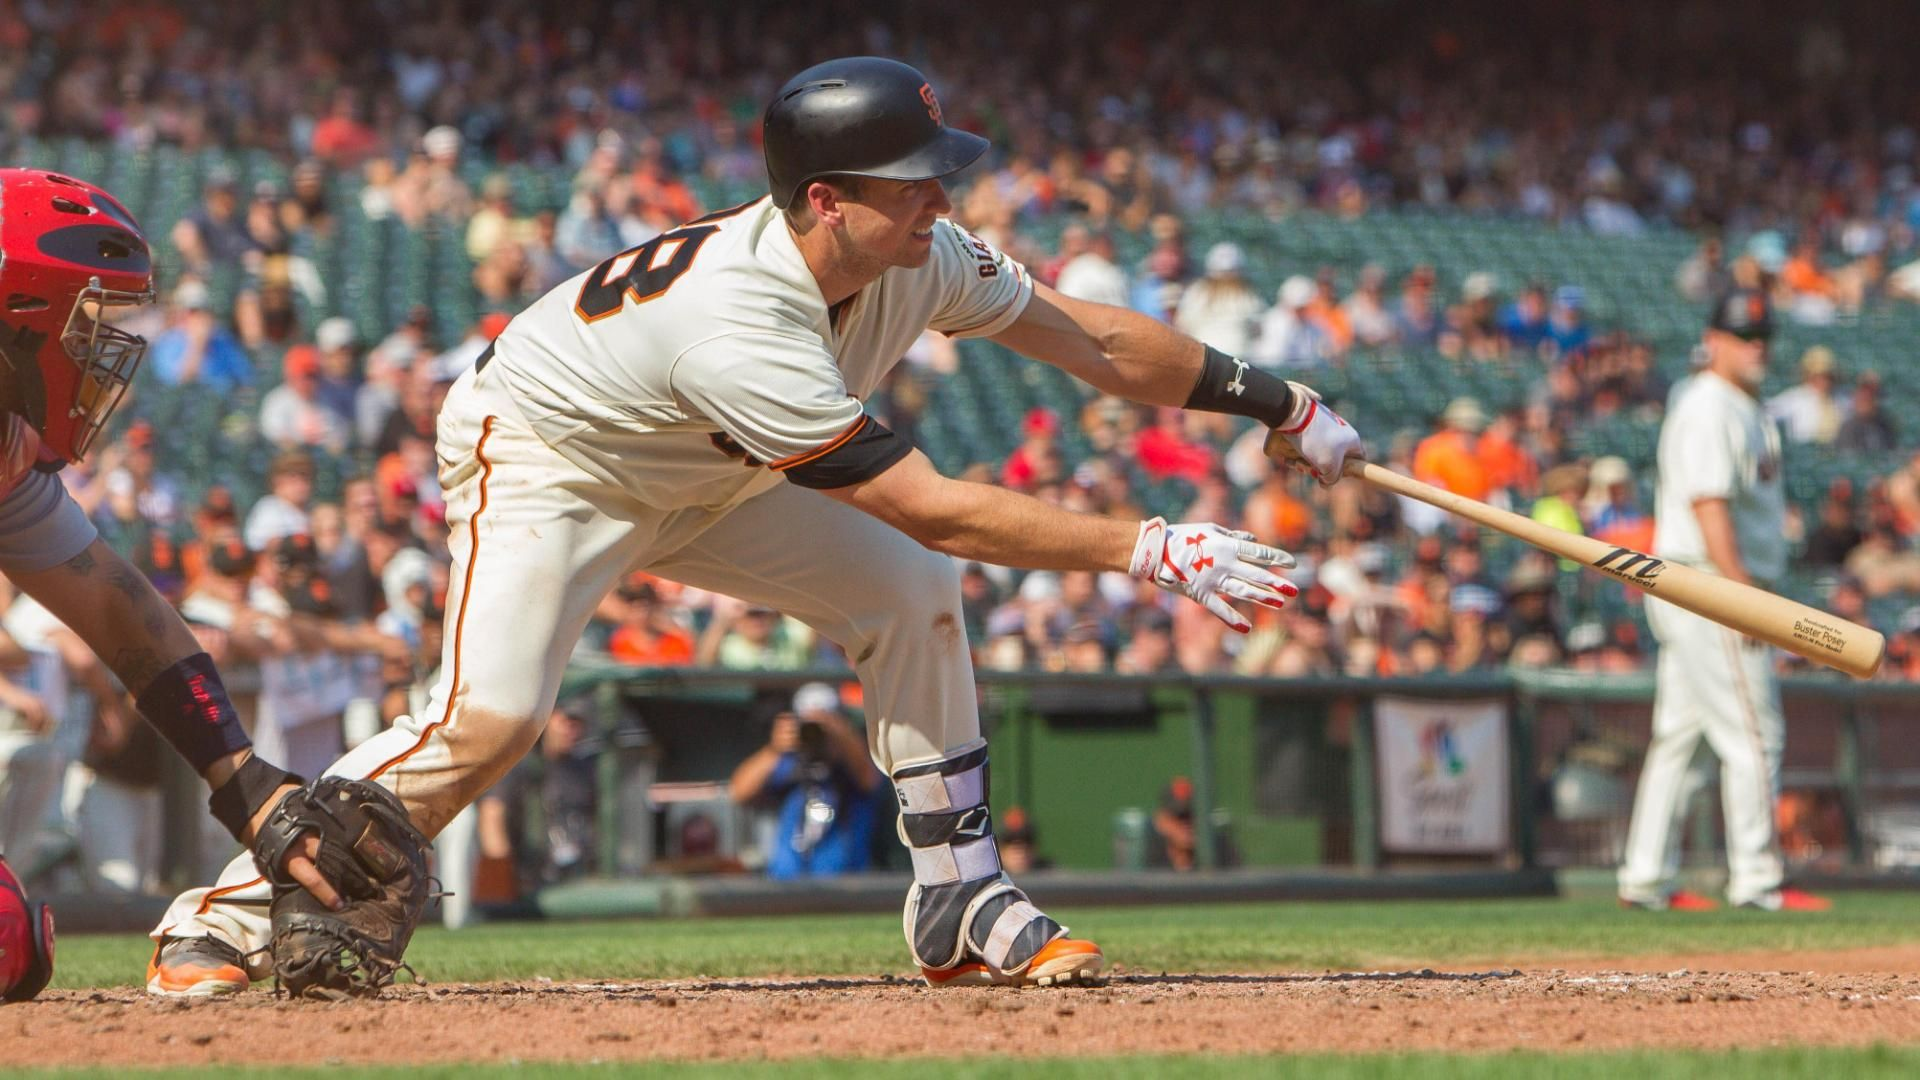 Posey ties it up in the bottom of the ninth